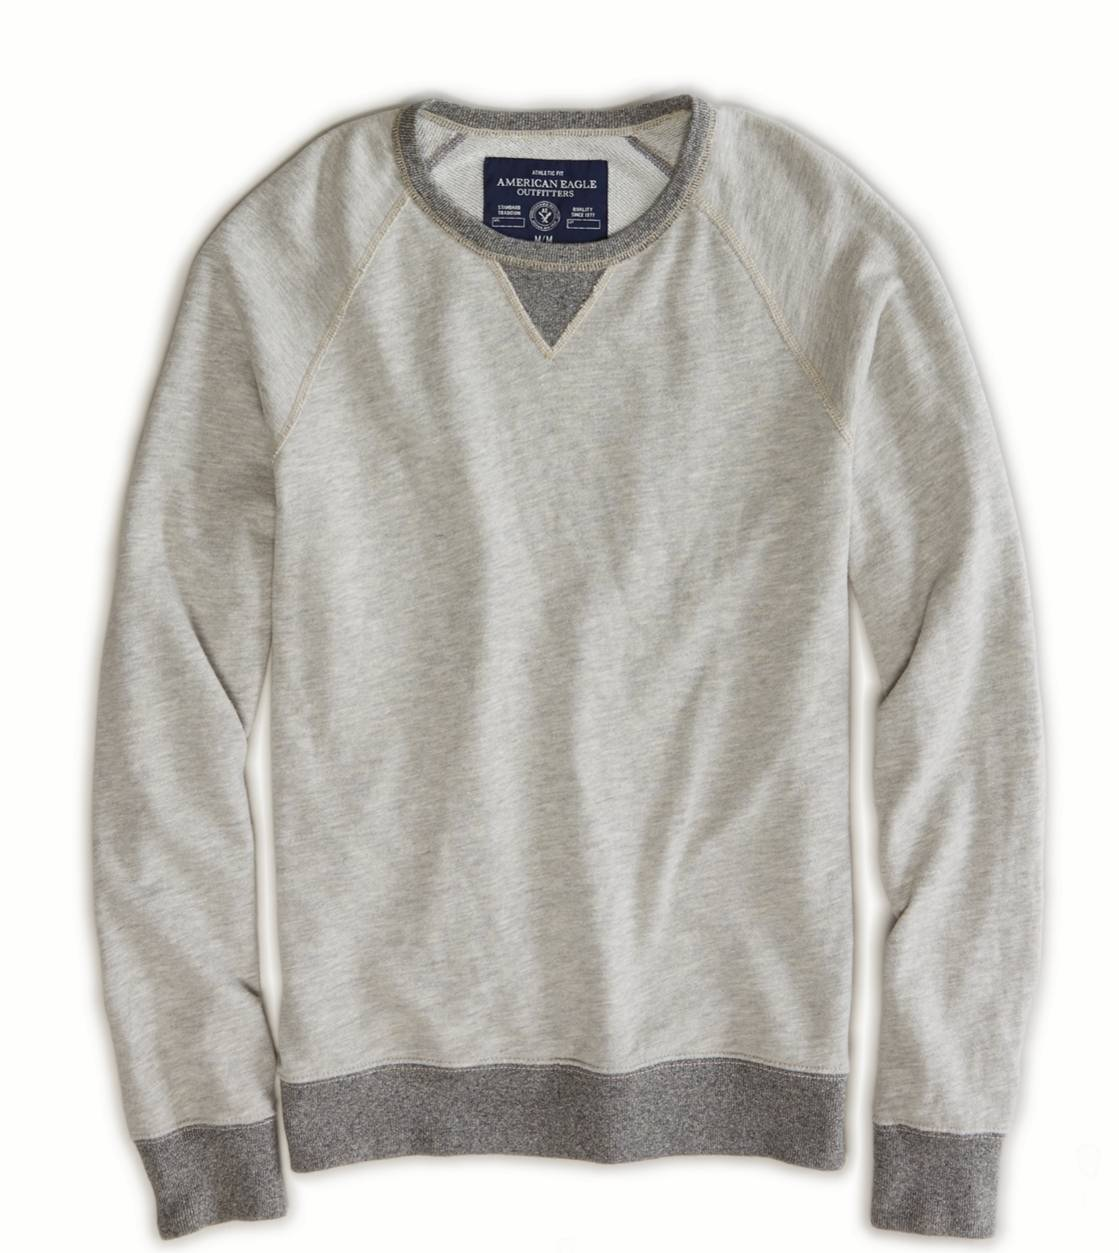 Heather Grey AE Crew Sweatshirt